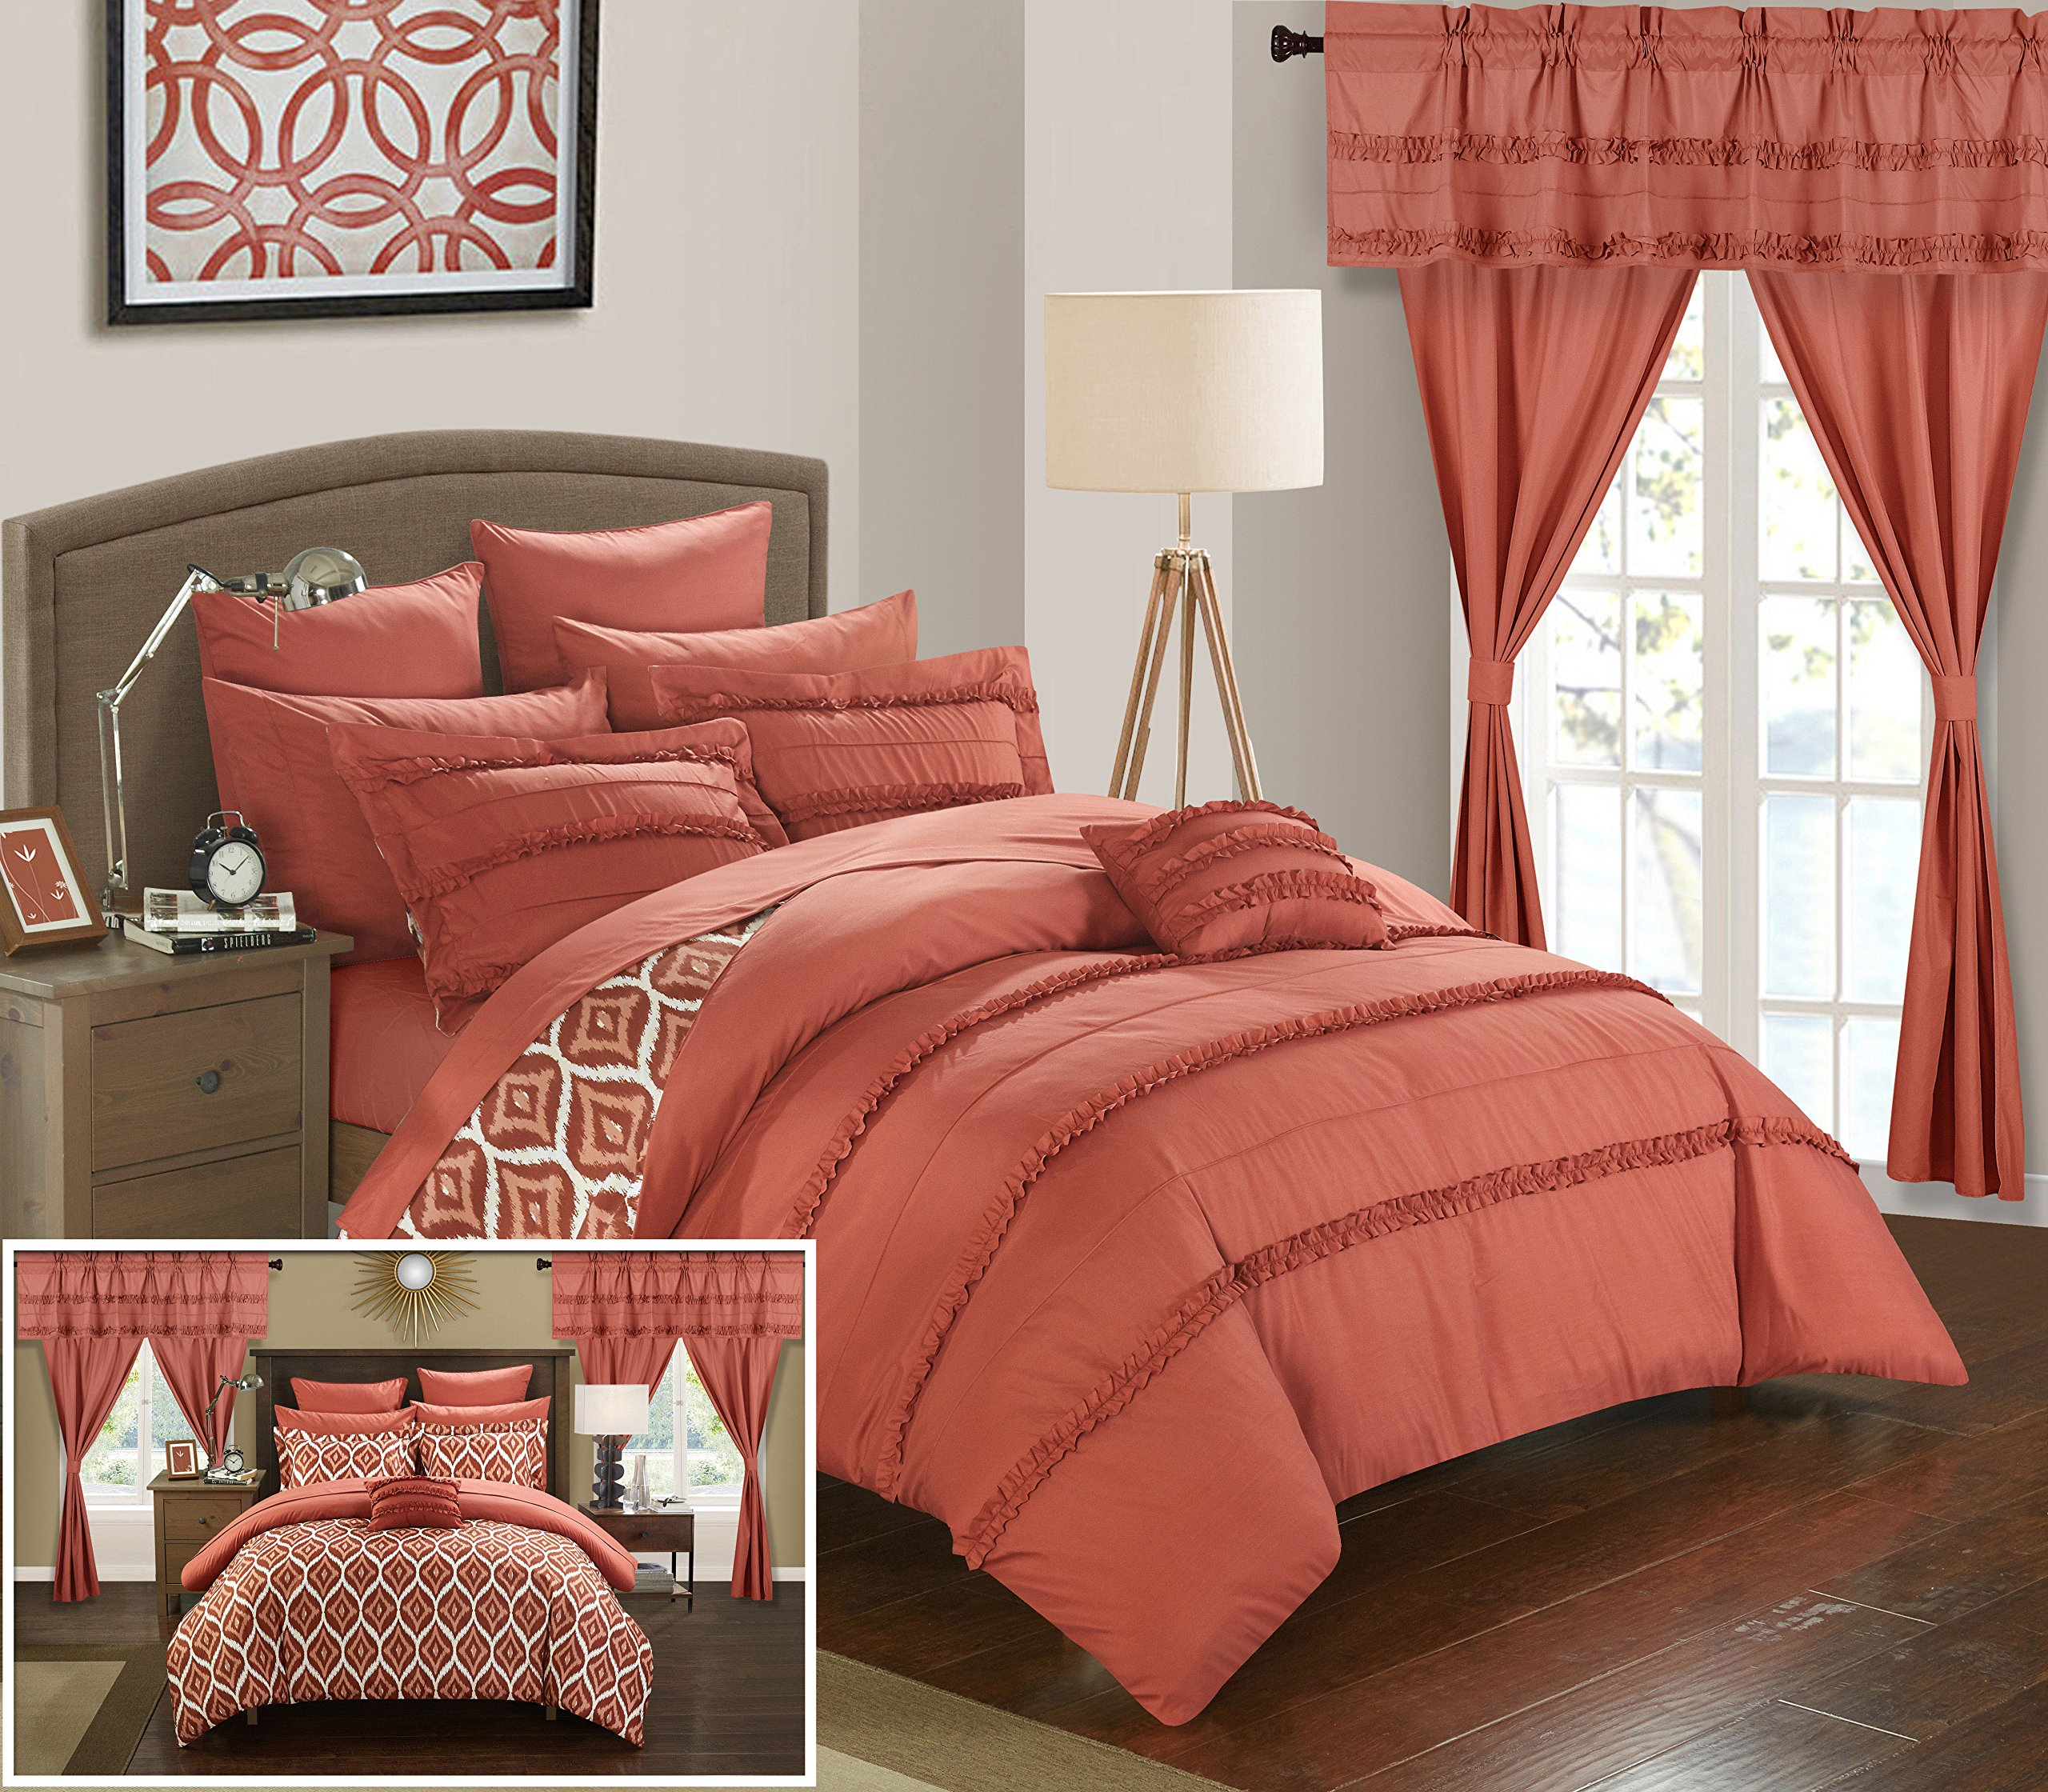 Chic Home CS0733-AN 20 Piece Adina Complete Bed Room In A Bag Super Pinch Pleated Design Reversible Geometric Pattern Comforter Set, Sheet, Window Treatments And Decorative Pillows, King, Brick Orange